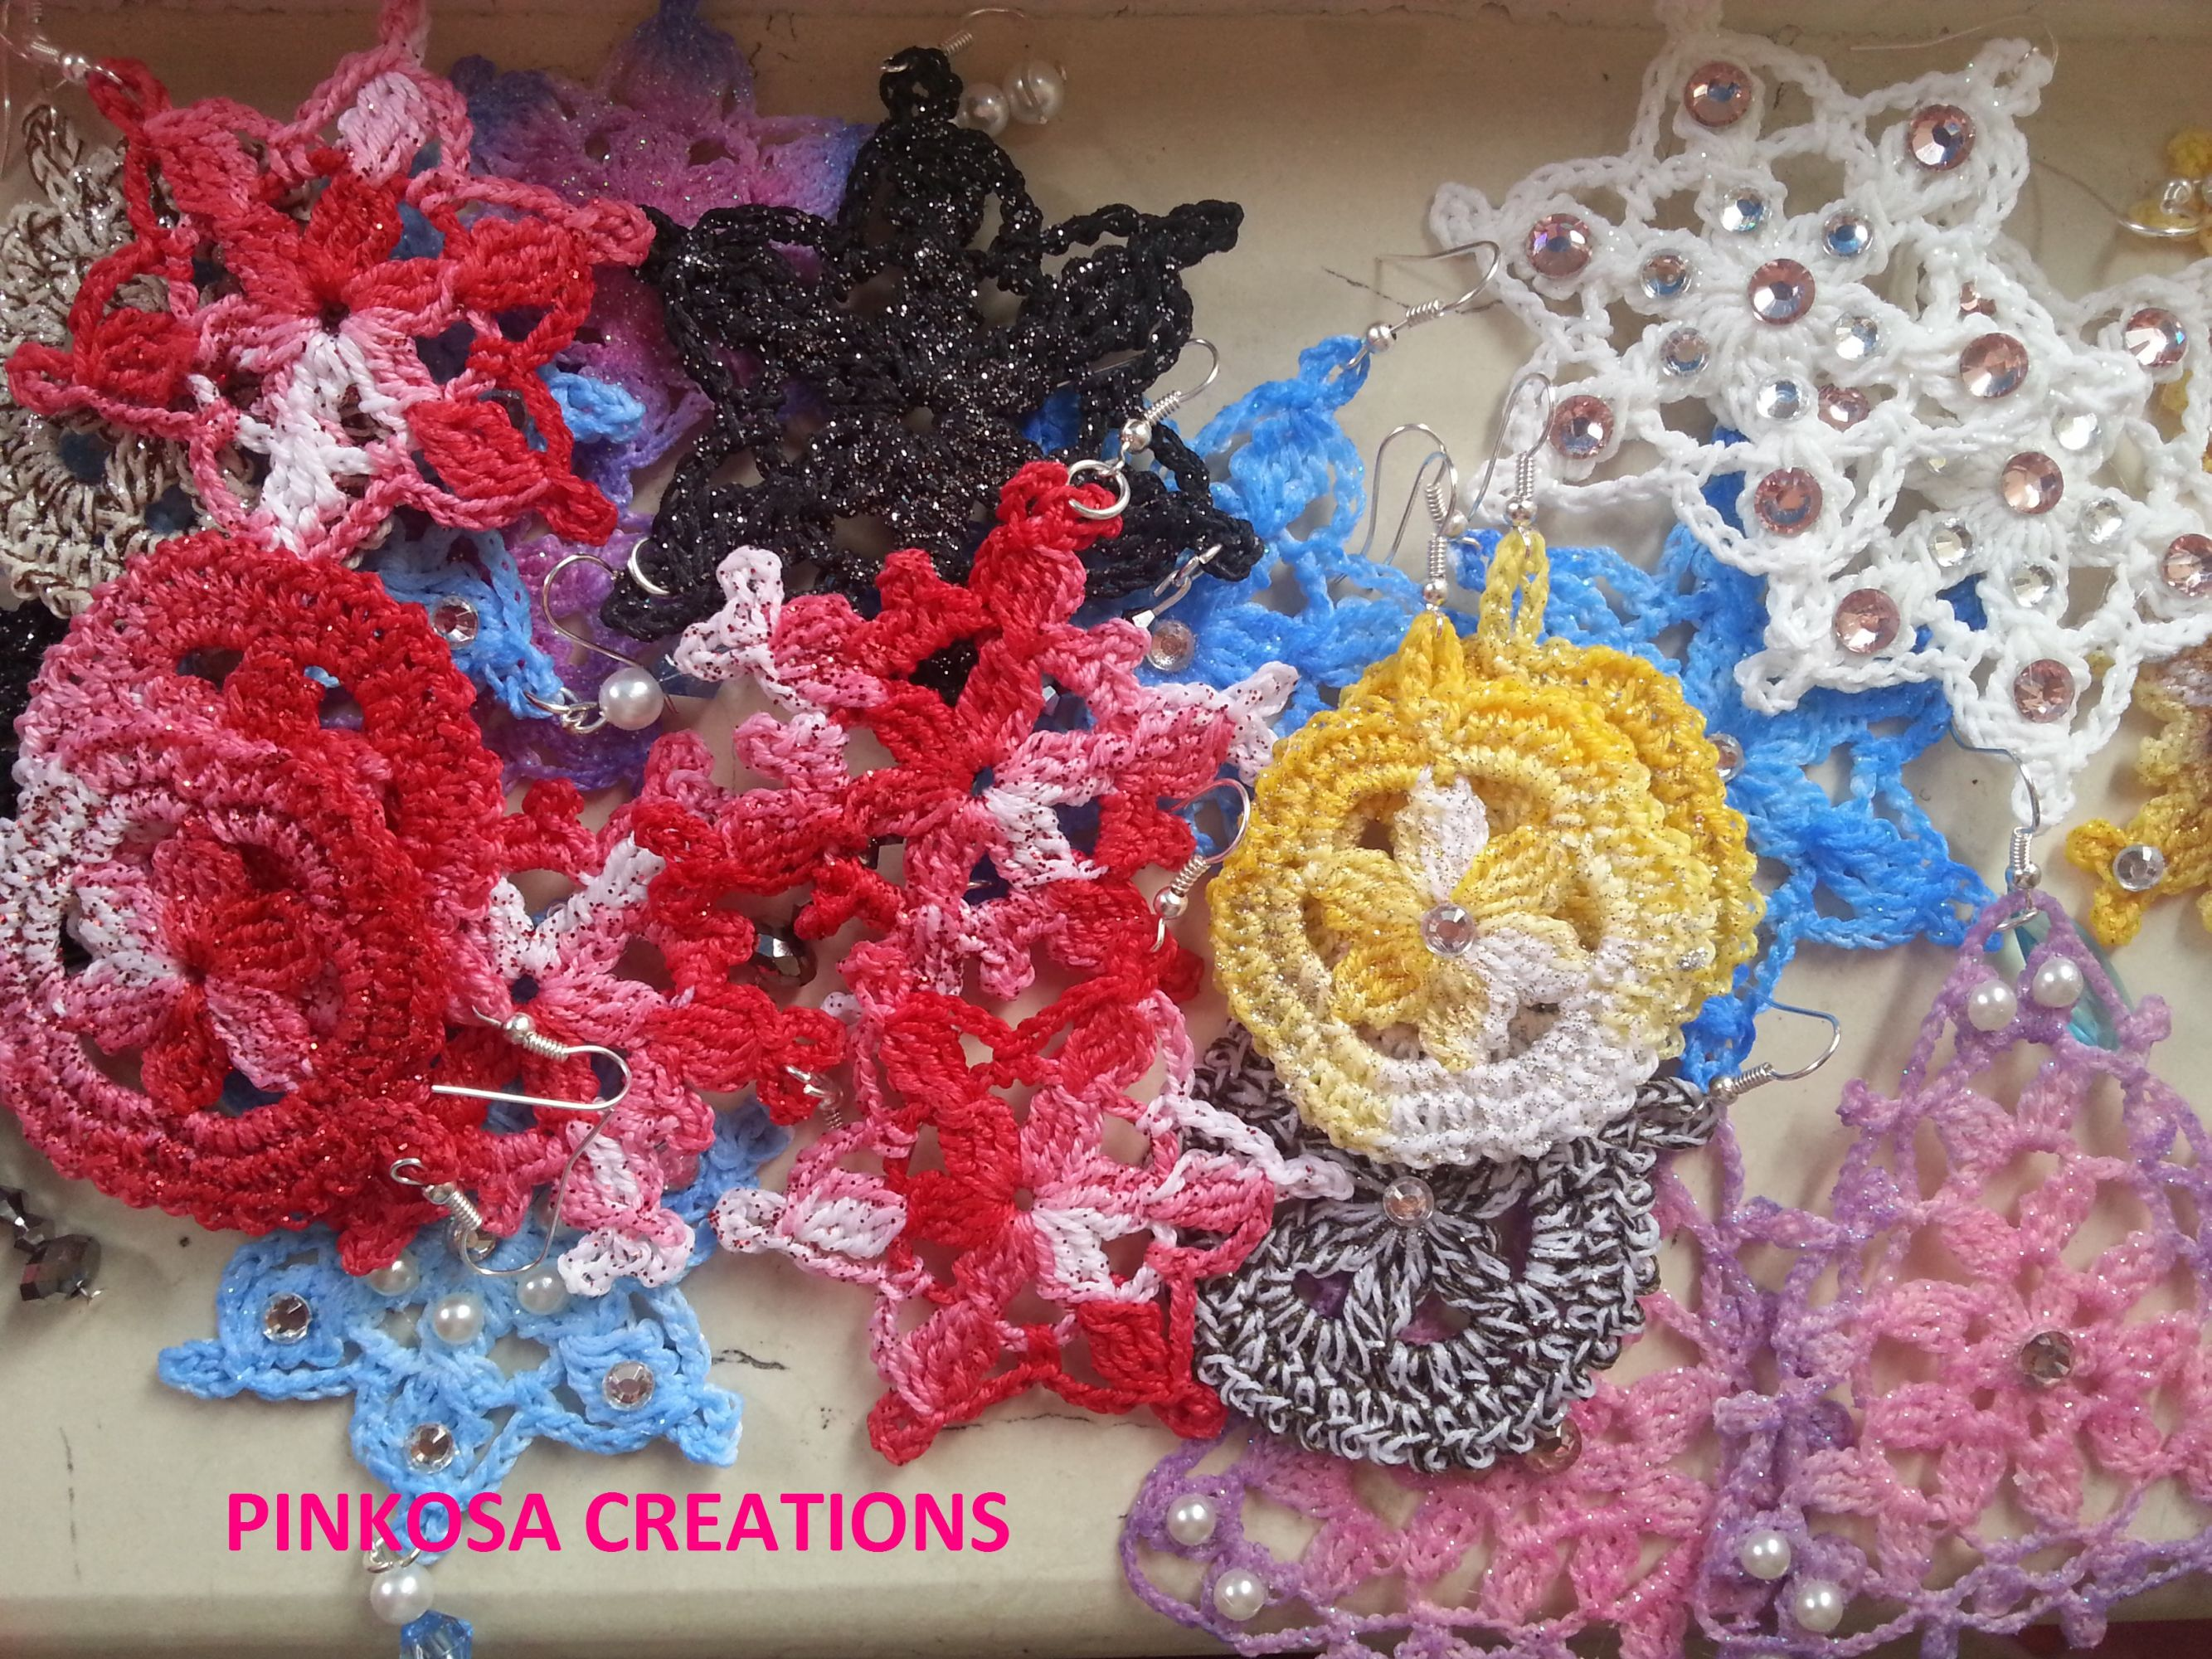 Pinkosa Creations